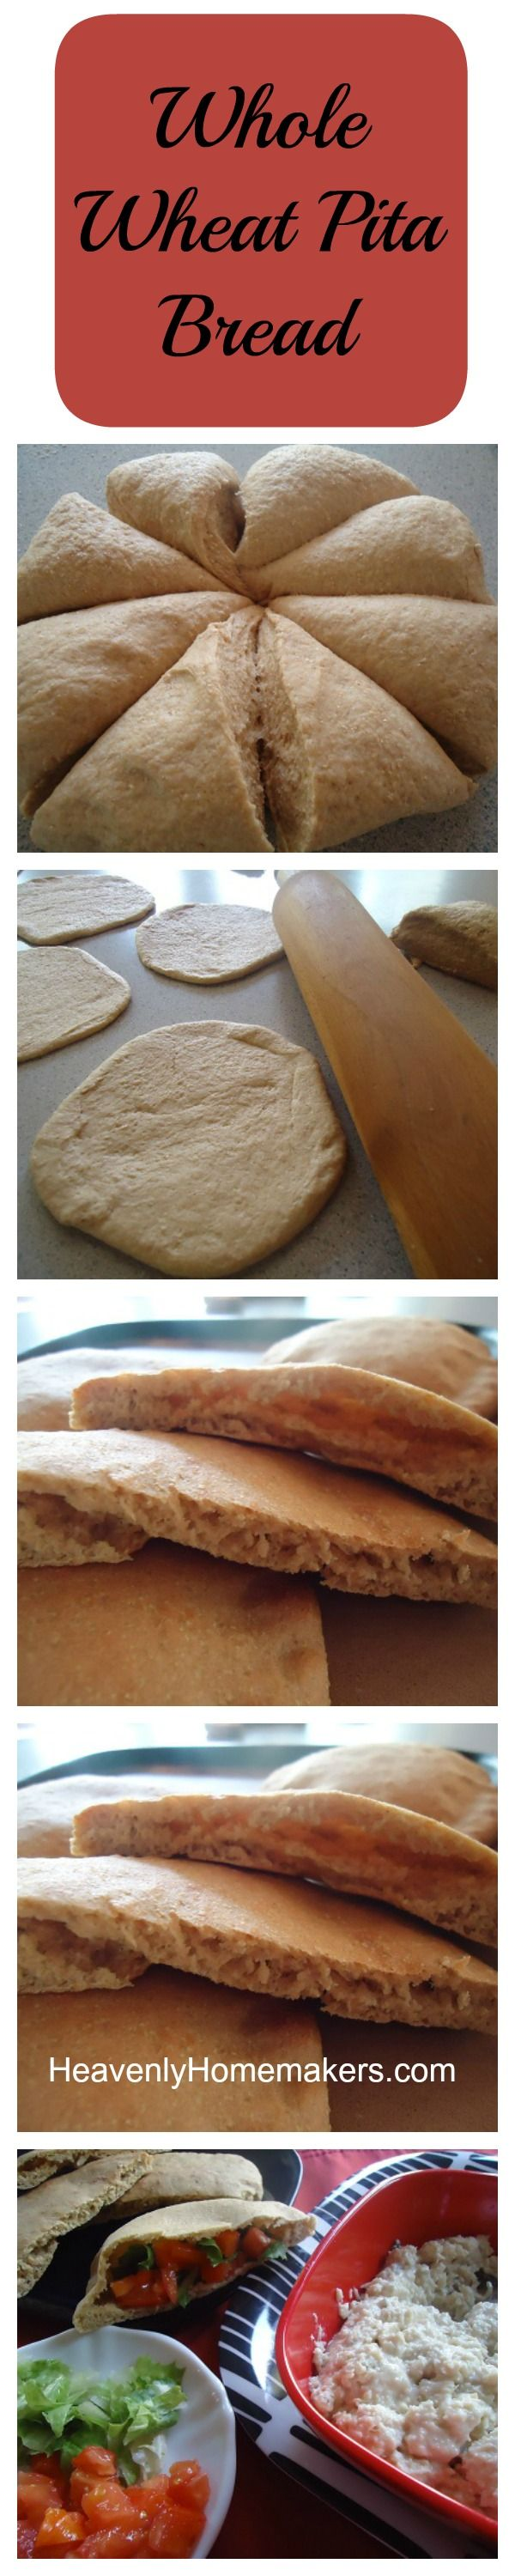 You won't believe how easy it is to make whole wheat pita bread. Save money too!